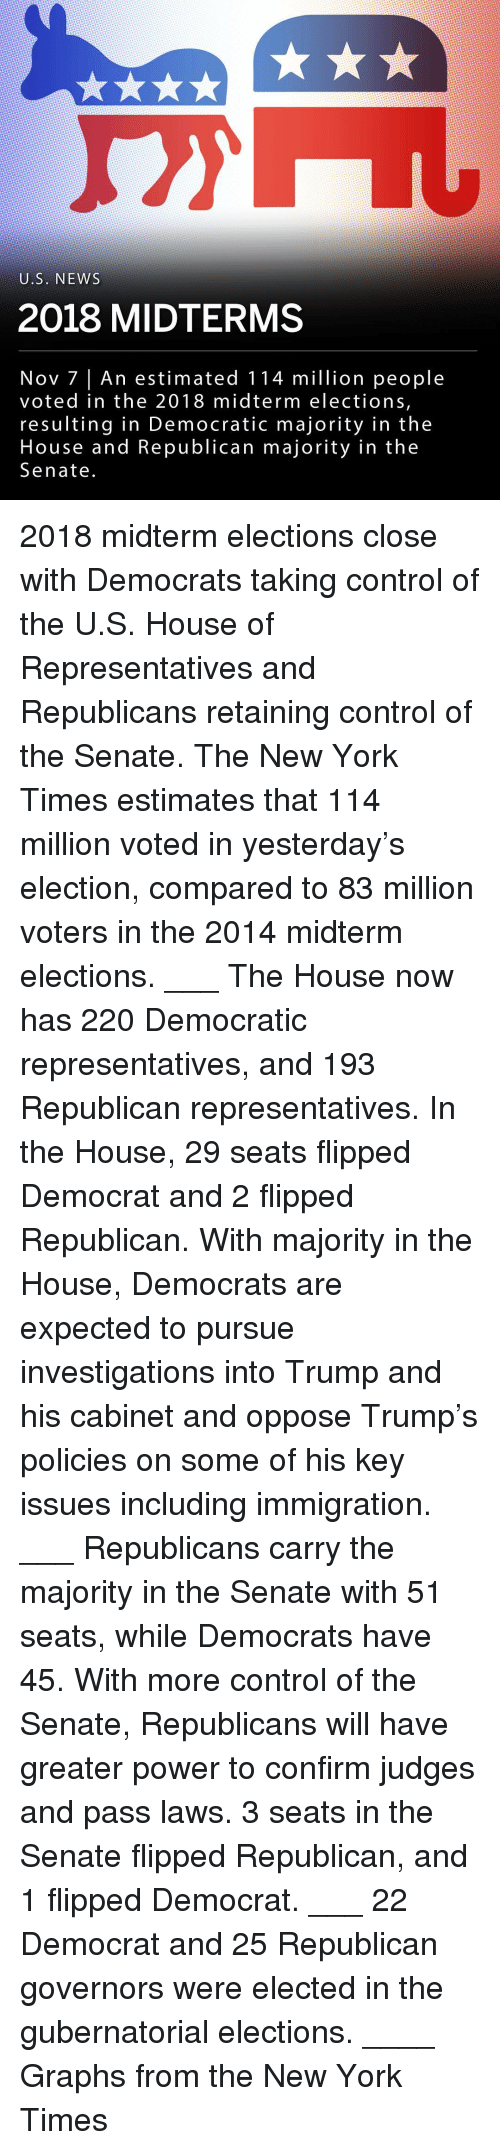 Memes, New York, and News: U.S. NEWS  2018 MIDTERMS  Nov 7 | An estimated 114 million people  voted in the 2018 midterm elections,  resulting in Democratic majority in the  House and Republican majority in the  Senate 2018 midterm elections close with Democrats taking control of the U.S. House of Representatives and Republicans retaining control of the Senate. The New York Times estimates that 114 million voted in yesterday's election, compared to 83 million voters in the 2014 midterm elections. ___ The House now has 220 Democratic representatives, and 193 Republican representatives. In the House, 29 seats flipped Democrat and 2 flipped Republican. With majority in the House, Democrats are expected to pursue investigations into Trump and his cabinet and oppose Trump's policies on some of his key issues including immigration. ___ Republicans carry the majority in the Senate with 51 seats, while Democrats have 45. With more control of the Senate, Republicans will have greater power to confirm judges and pass laws. 3 seats in the Senate flipped Republican, and 1 flipped Democrat. ___ 22 Democrat and 25 Republican governors were elected in the gubernatorial elections. ____ Graphs from the New York Times